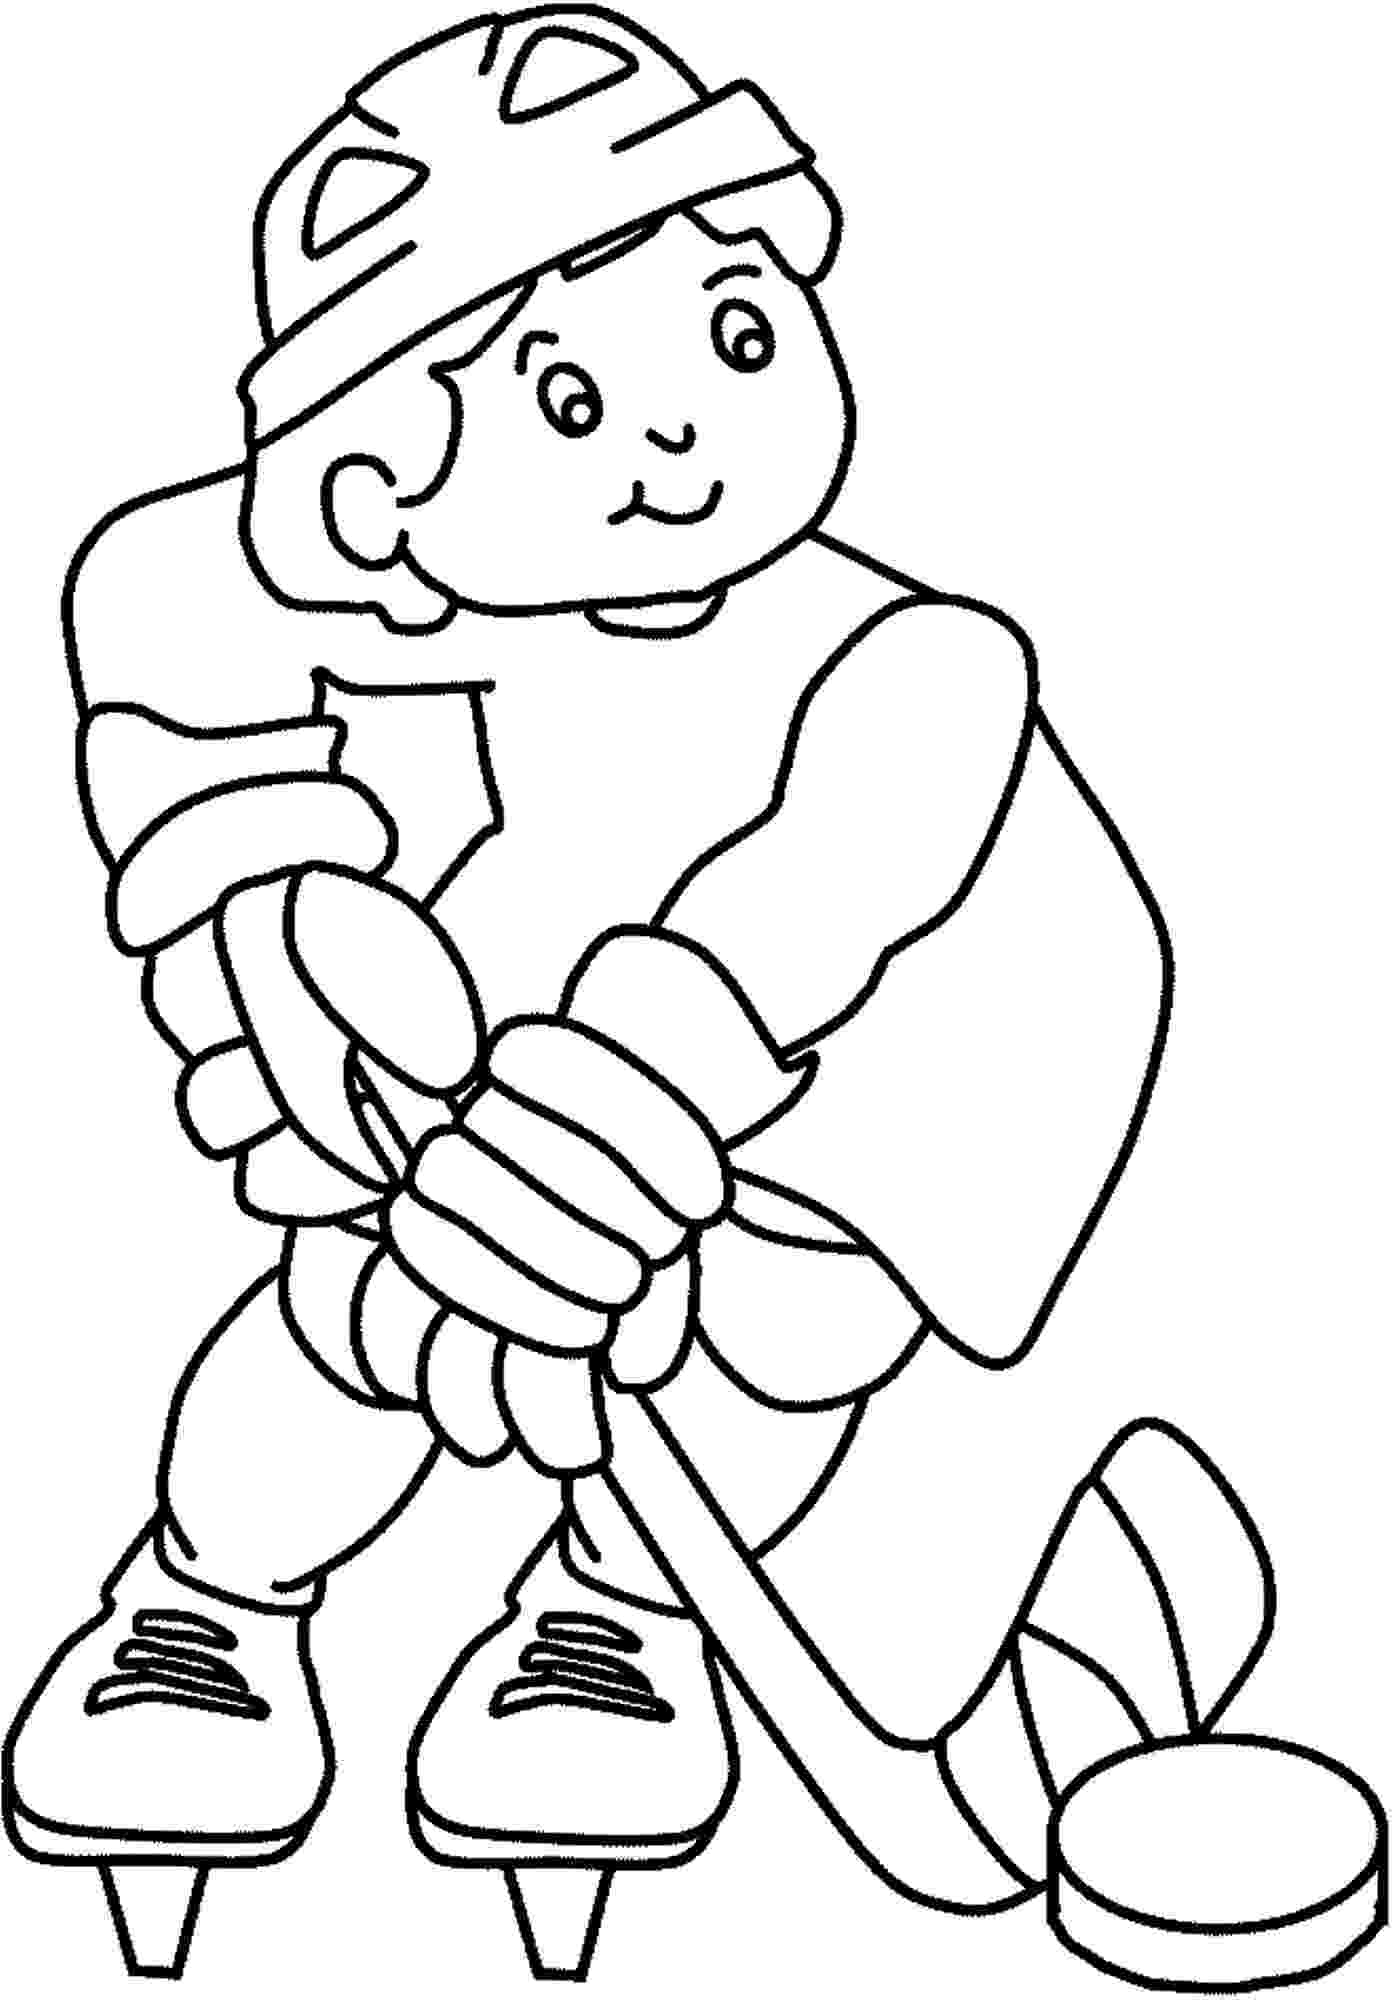 printable hockey pictures free printable hockey coloring pages for kids hockey pictures printable